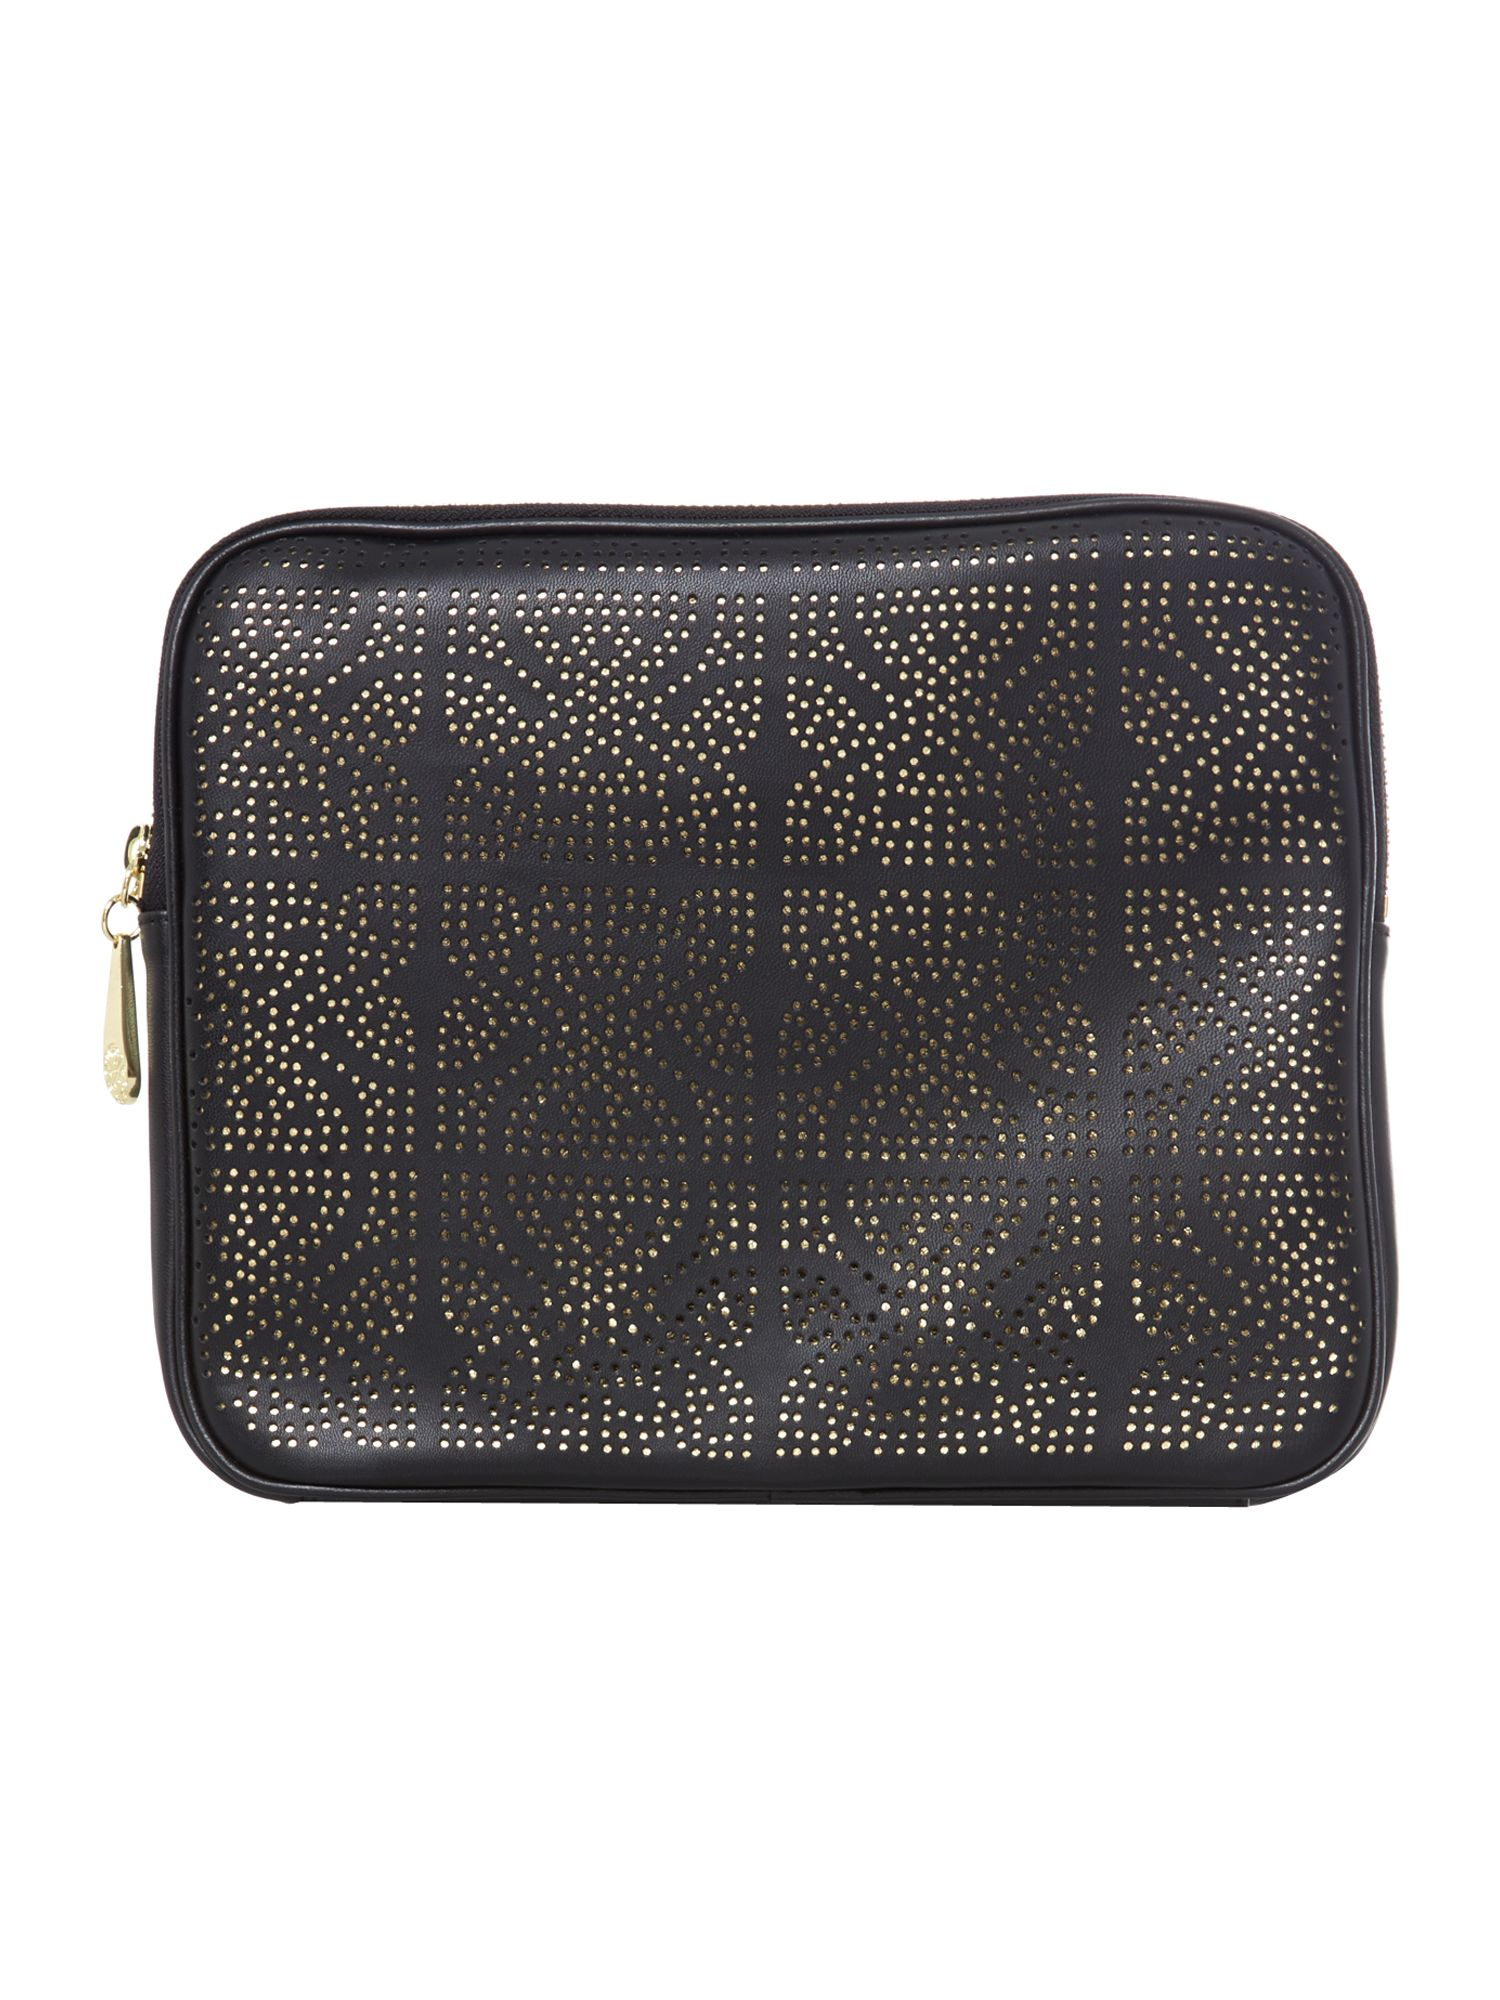 Perforated tablet case